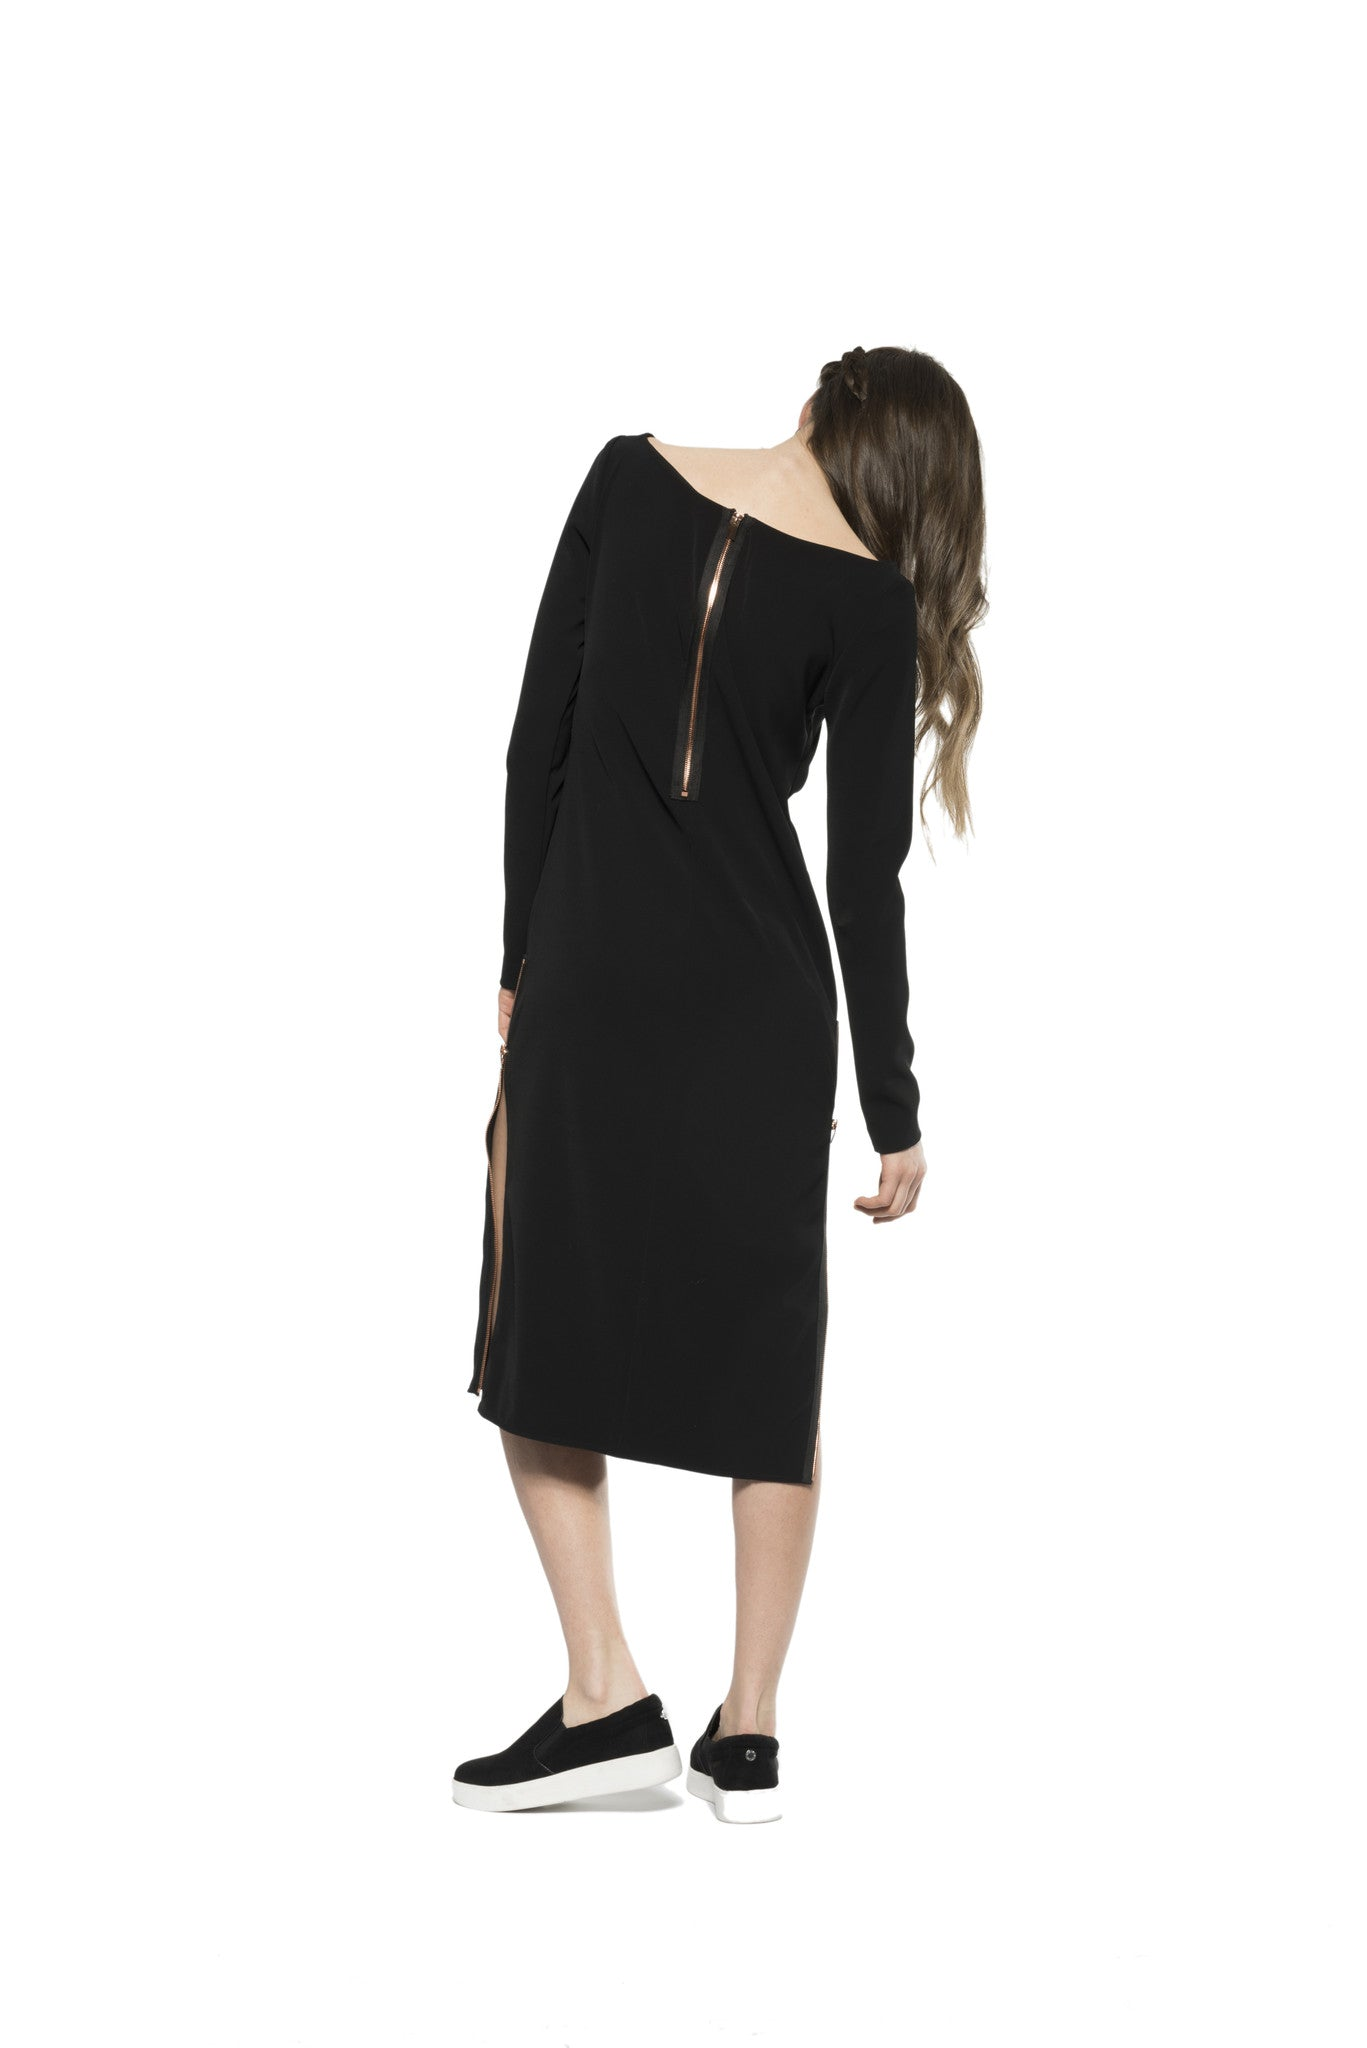 NOMAD VII - CHILAN DRESS WITH ROSE GOLD ZIPPERS - NOMAD VII X ANNE BOWEN